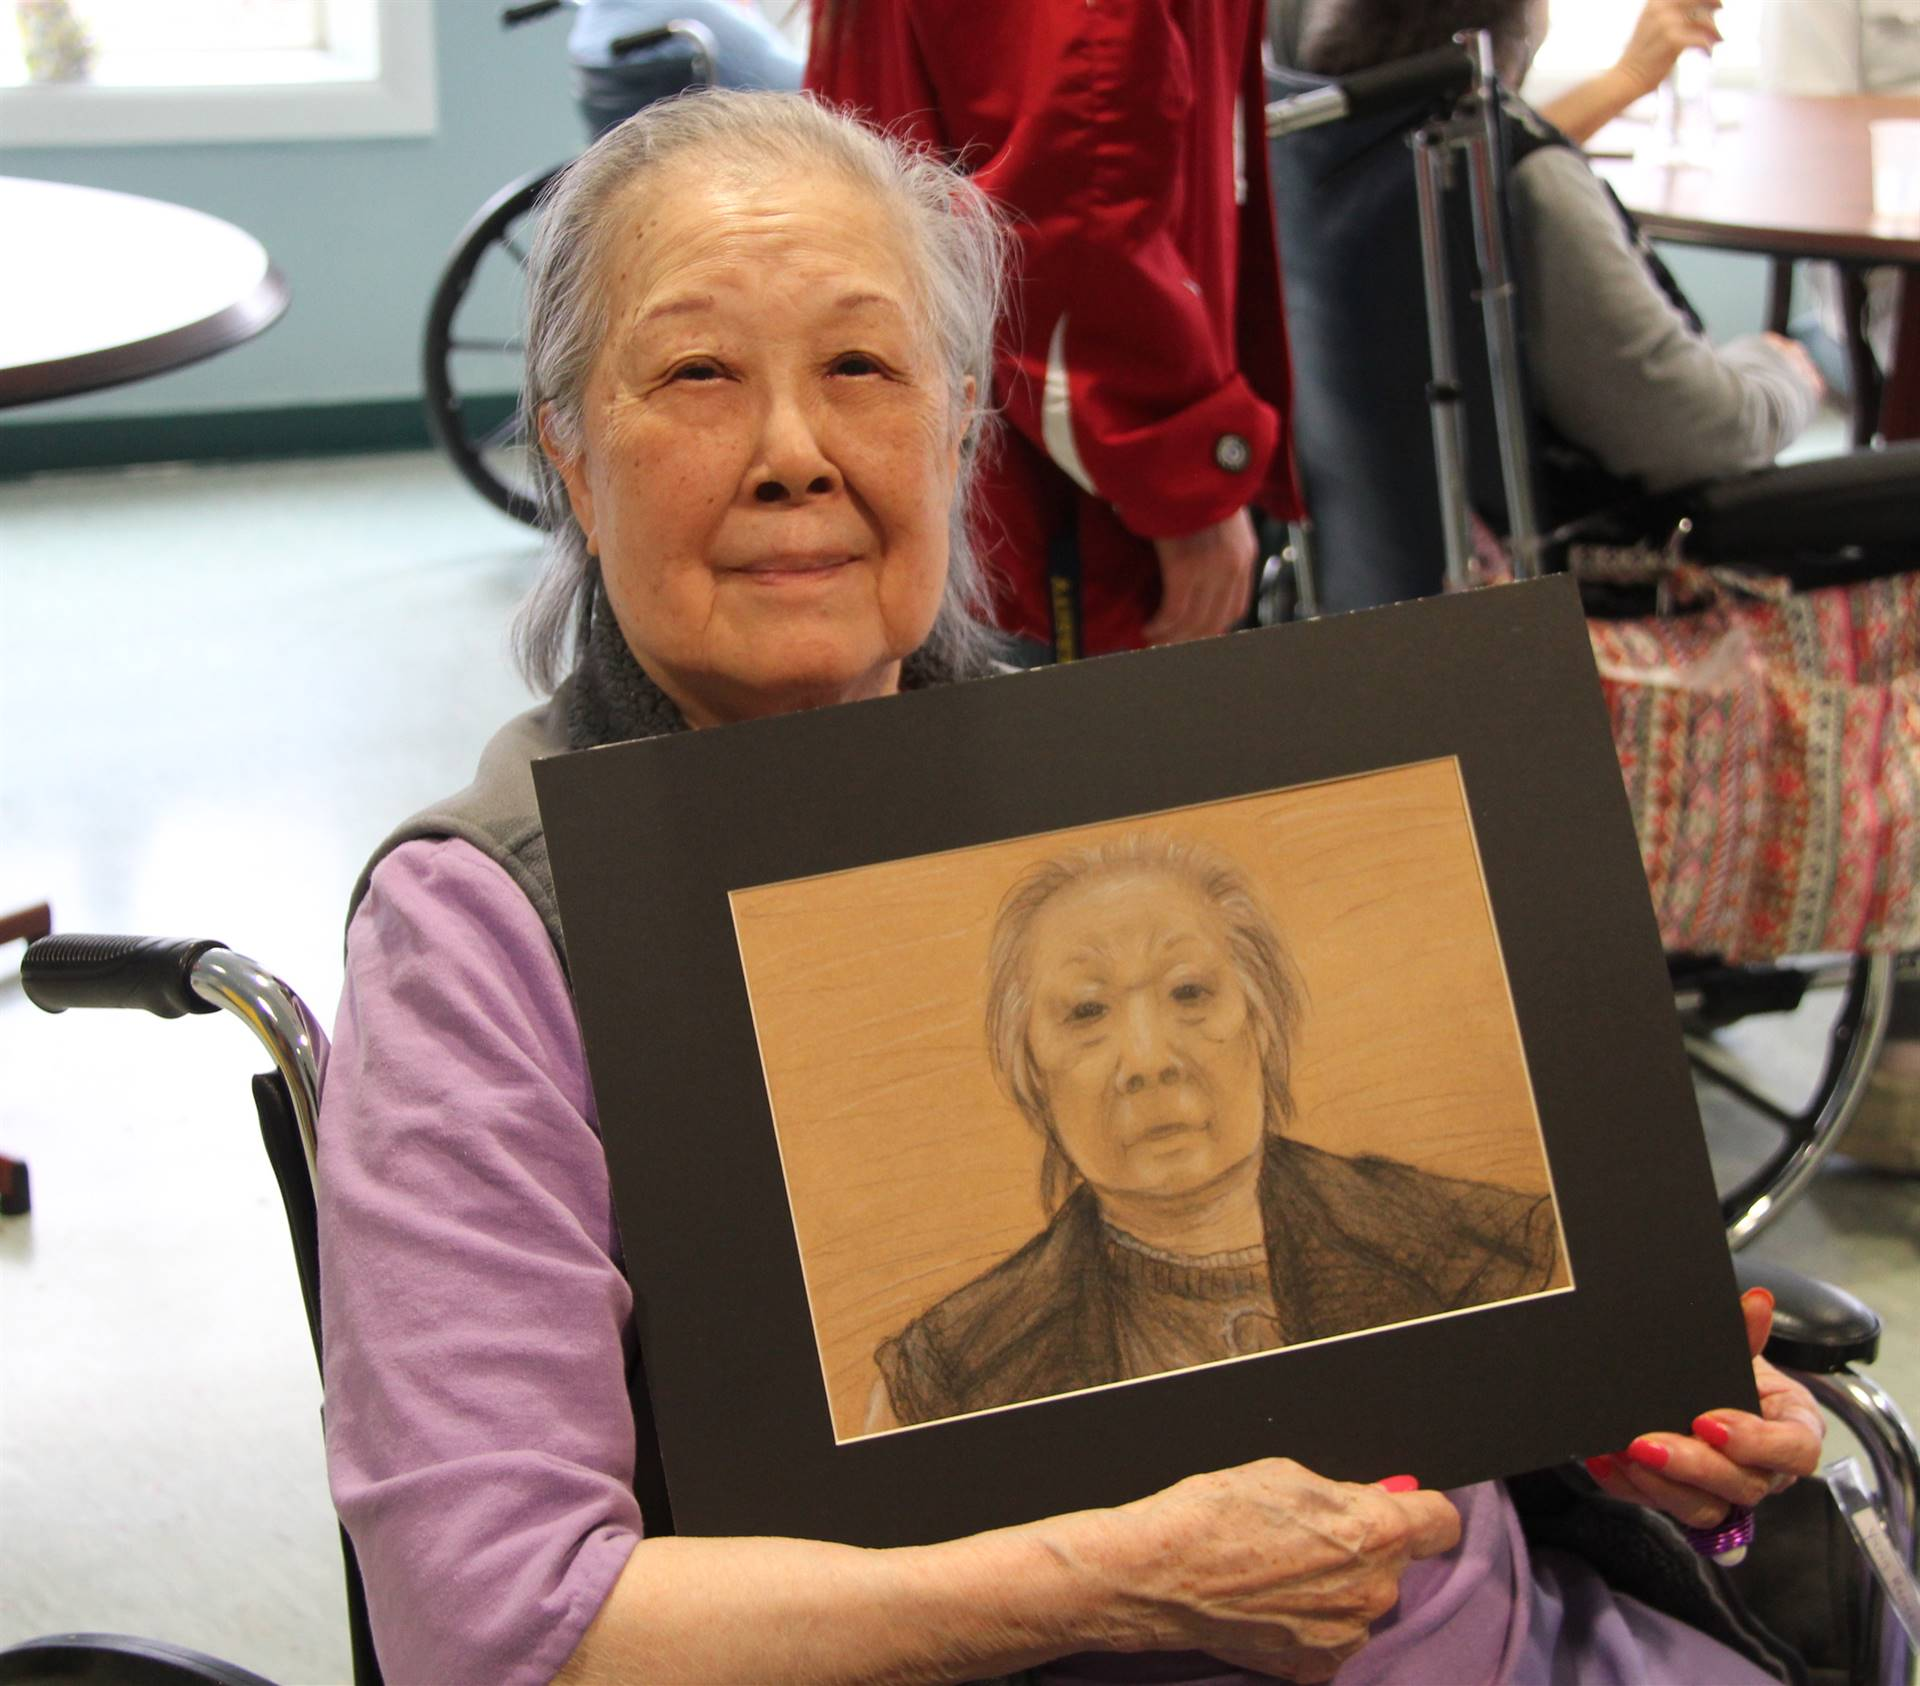 woman smiling holding picture of herself